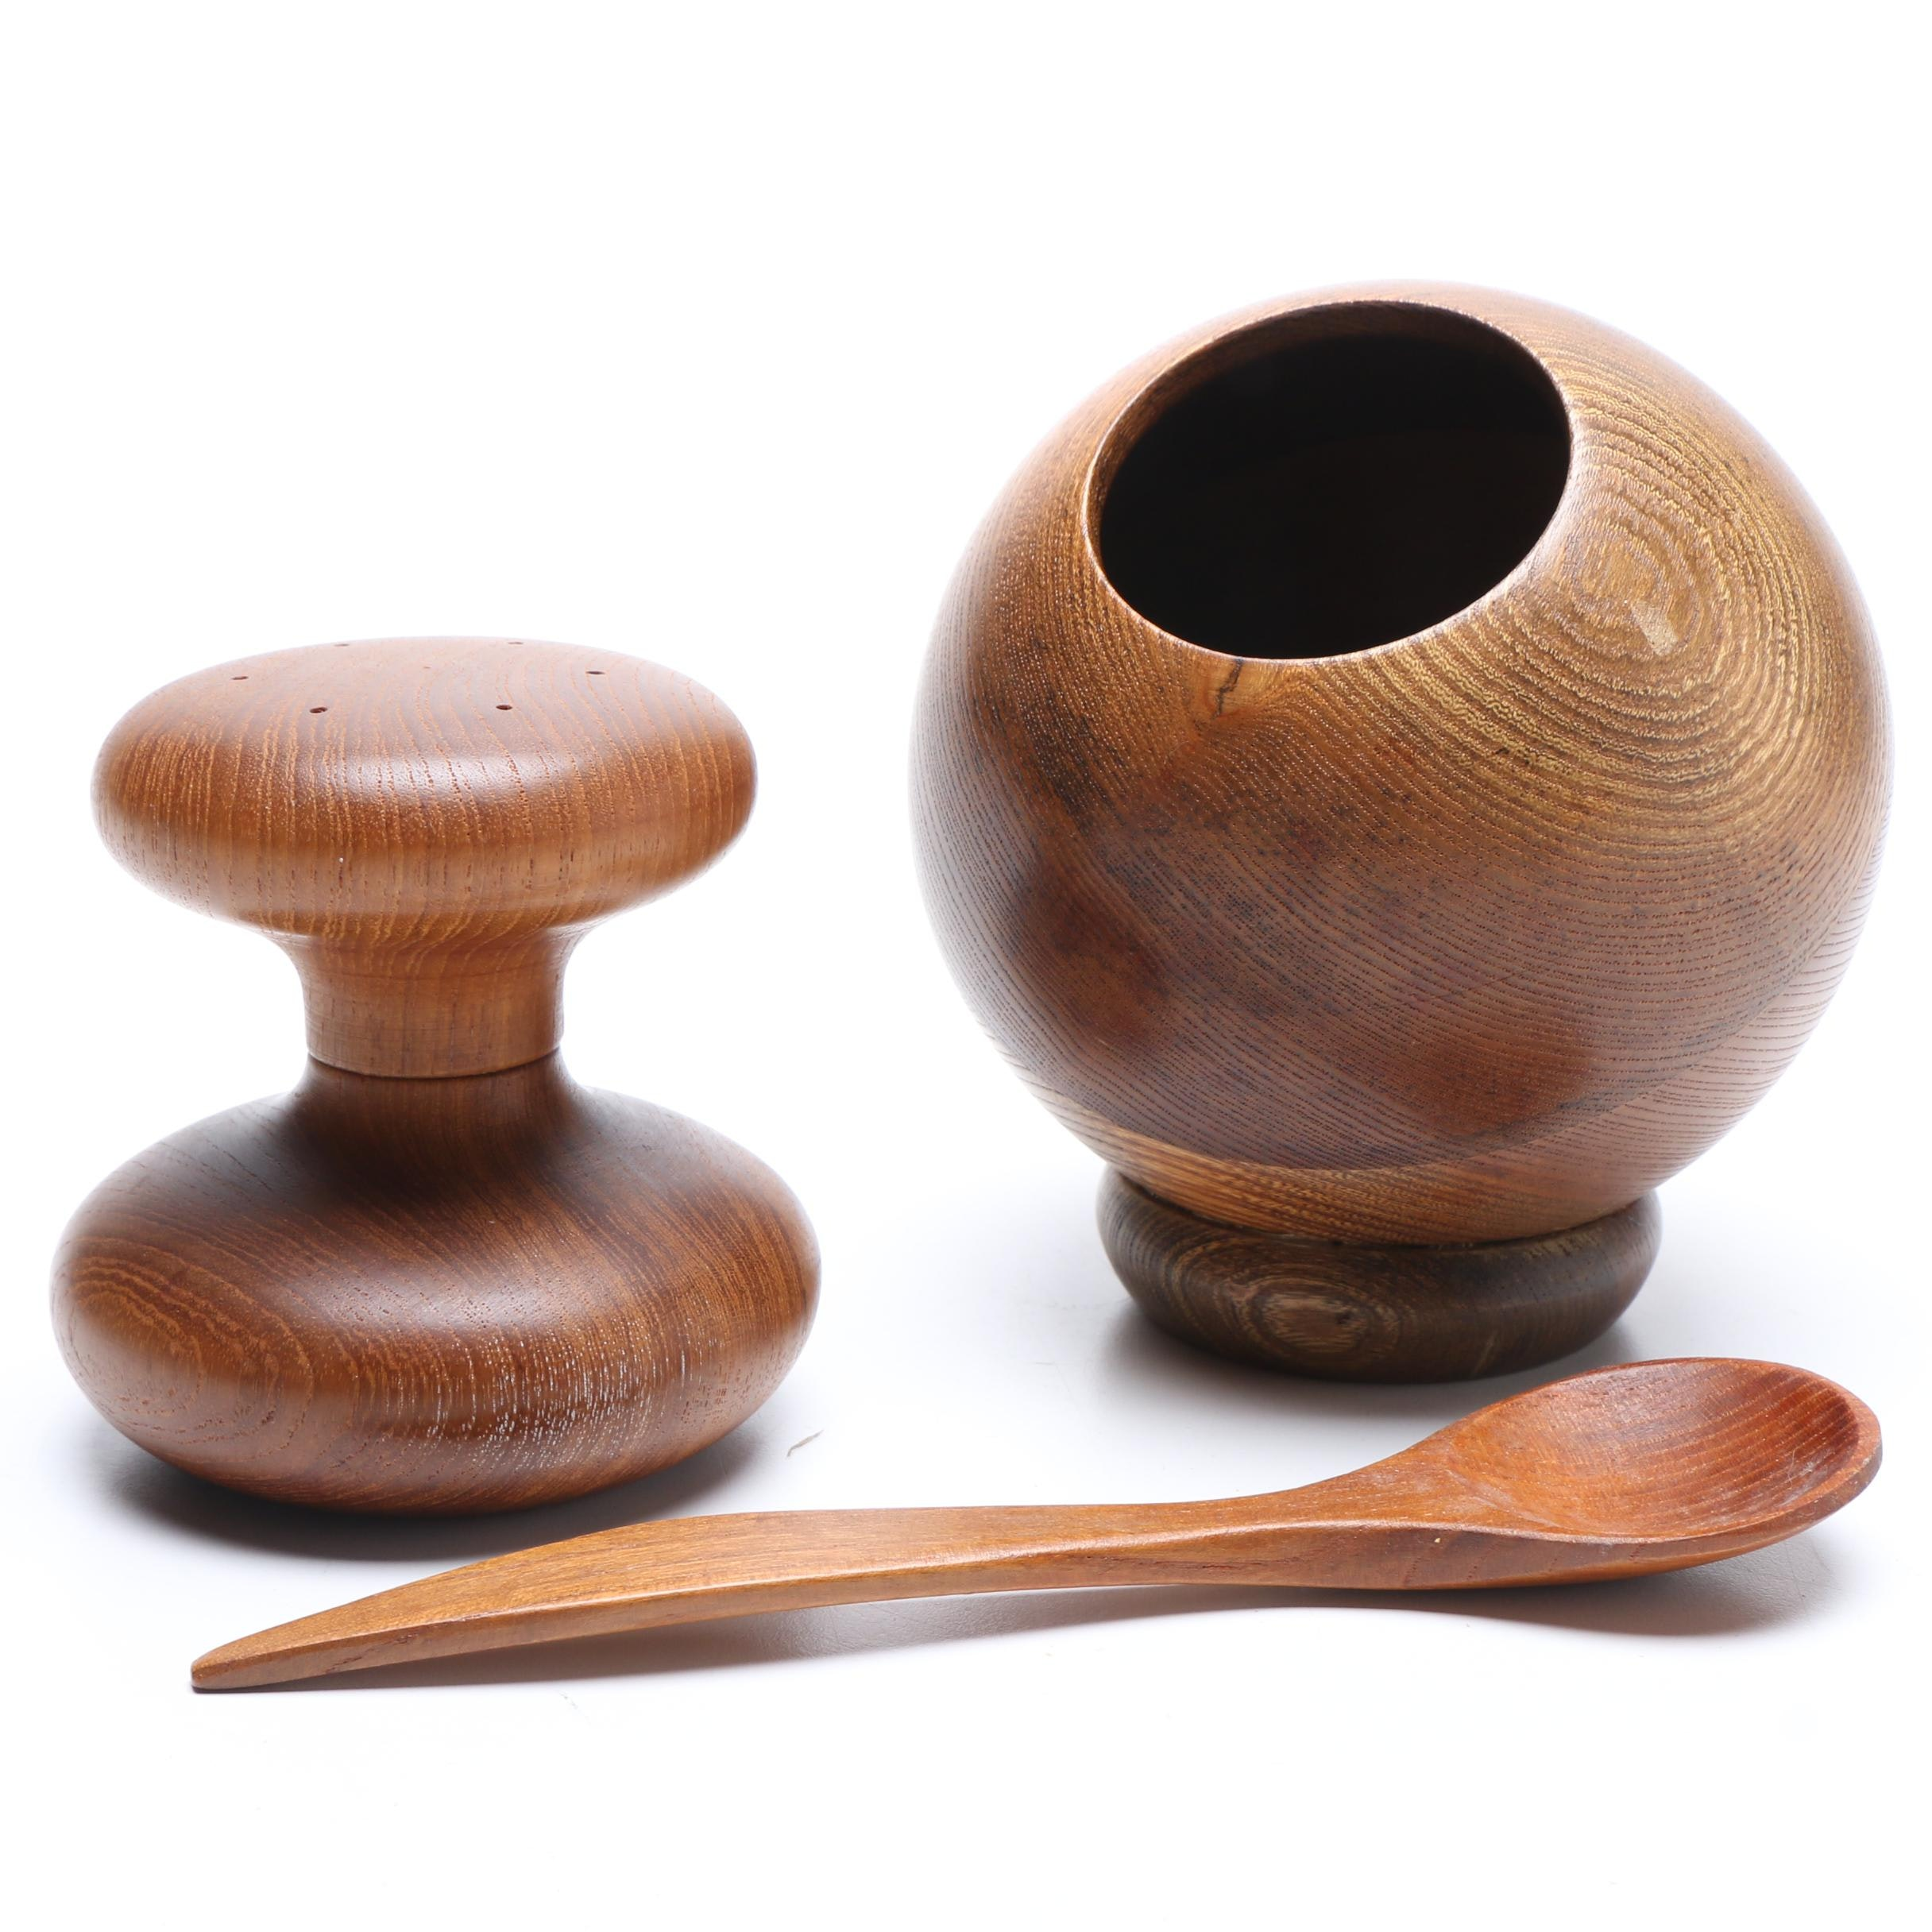 Teak Salt Cellar with Spoon and Dansk Designs Teak Pepper Grinder